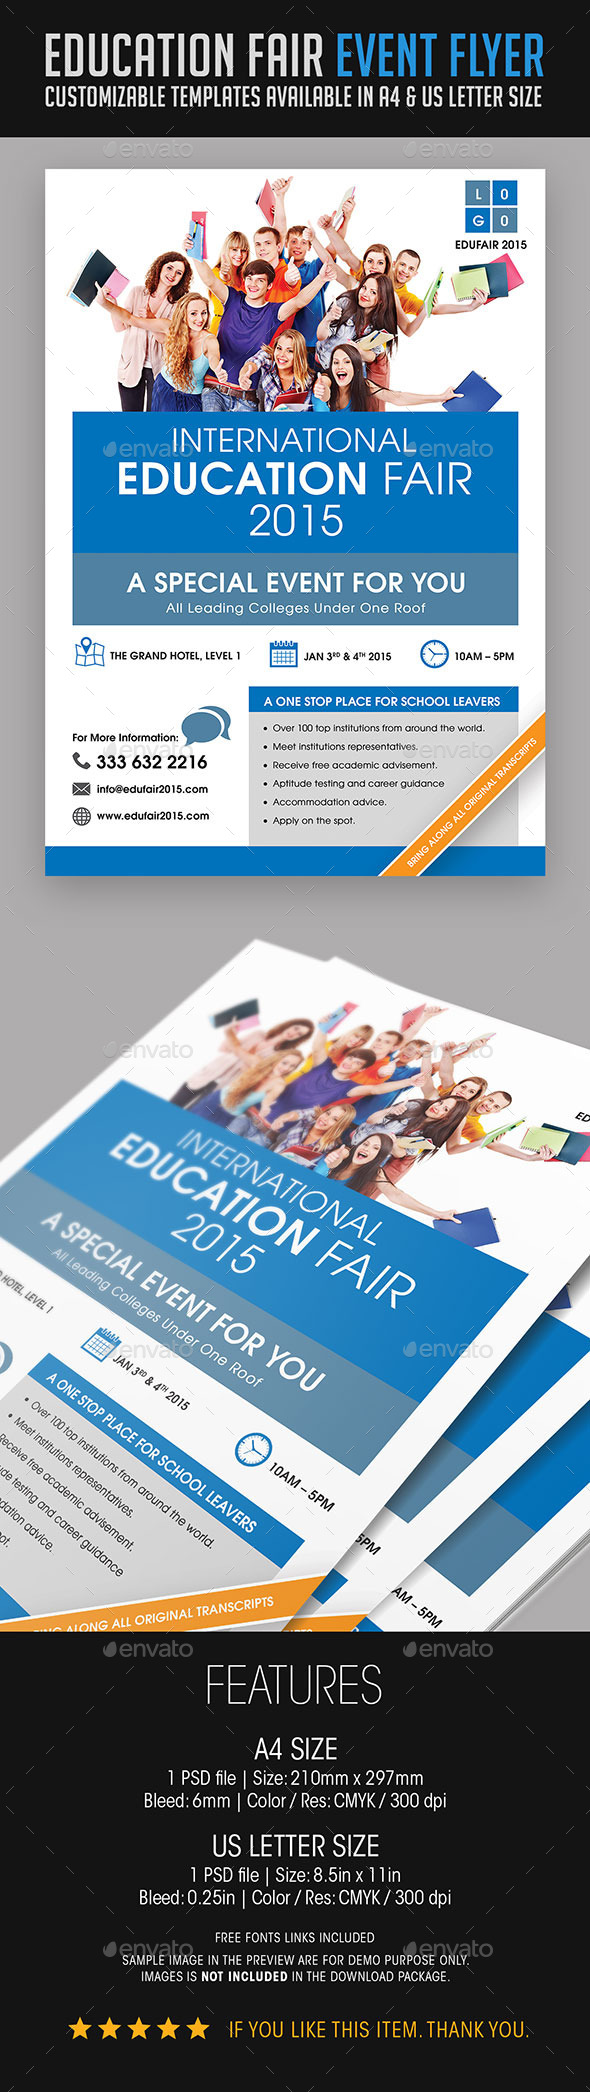 GraphicRiver Education Fair Event Flyer 9053628